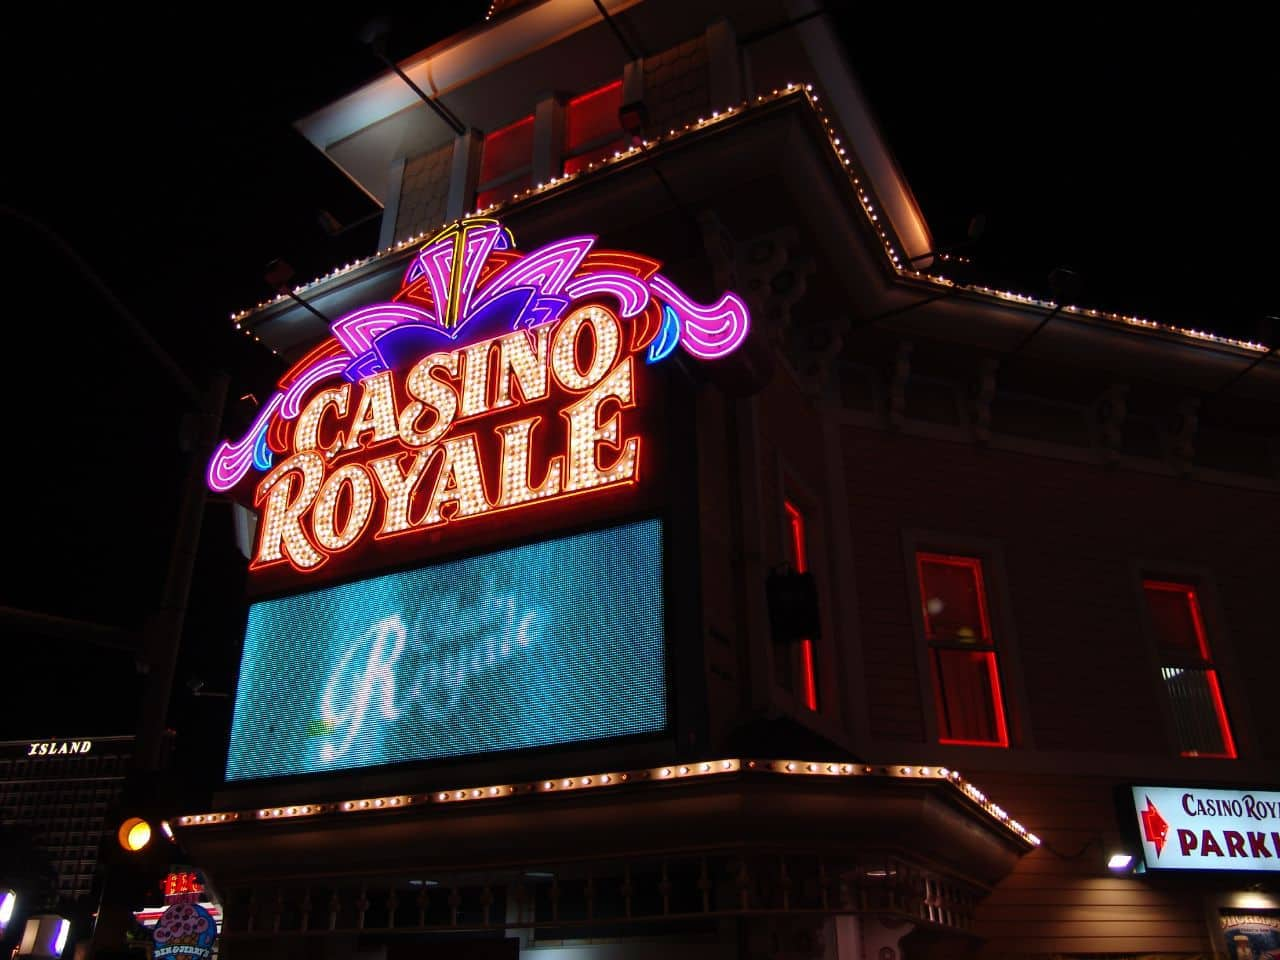 The Casino Royale in Las Vegas